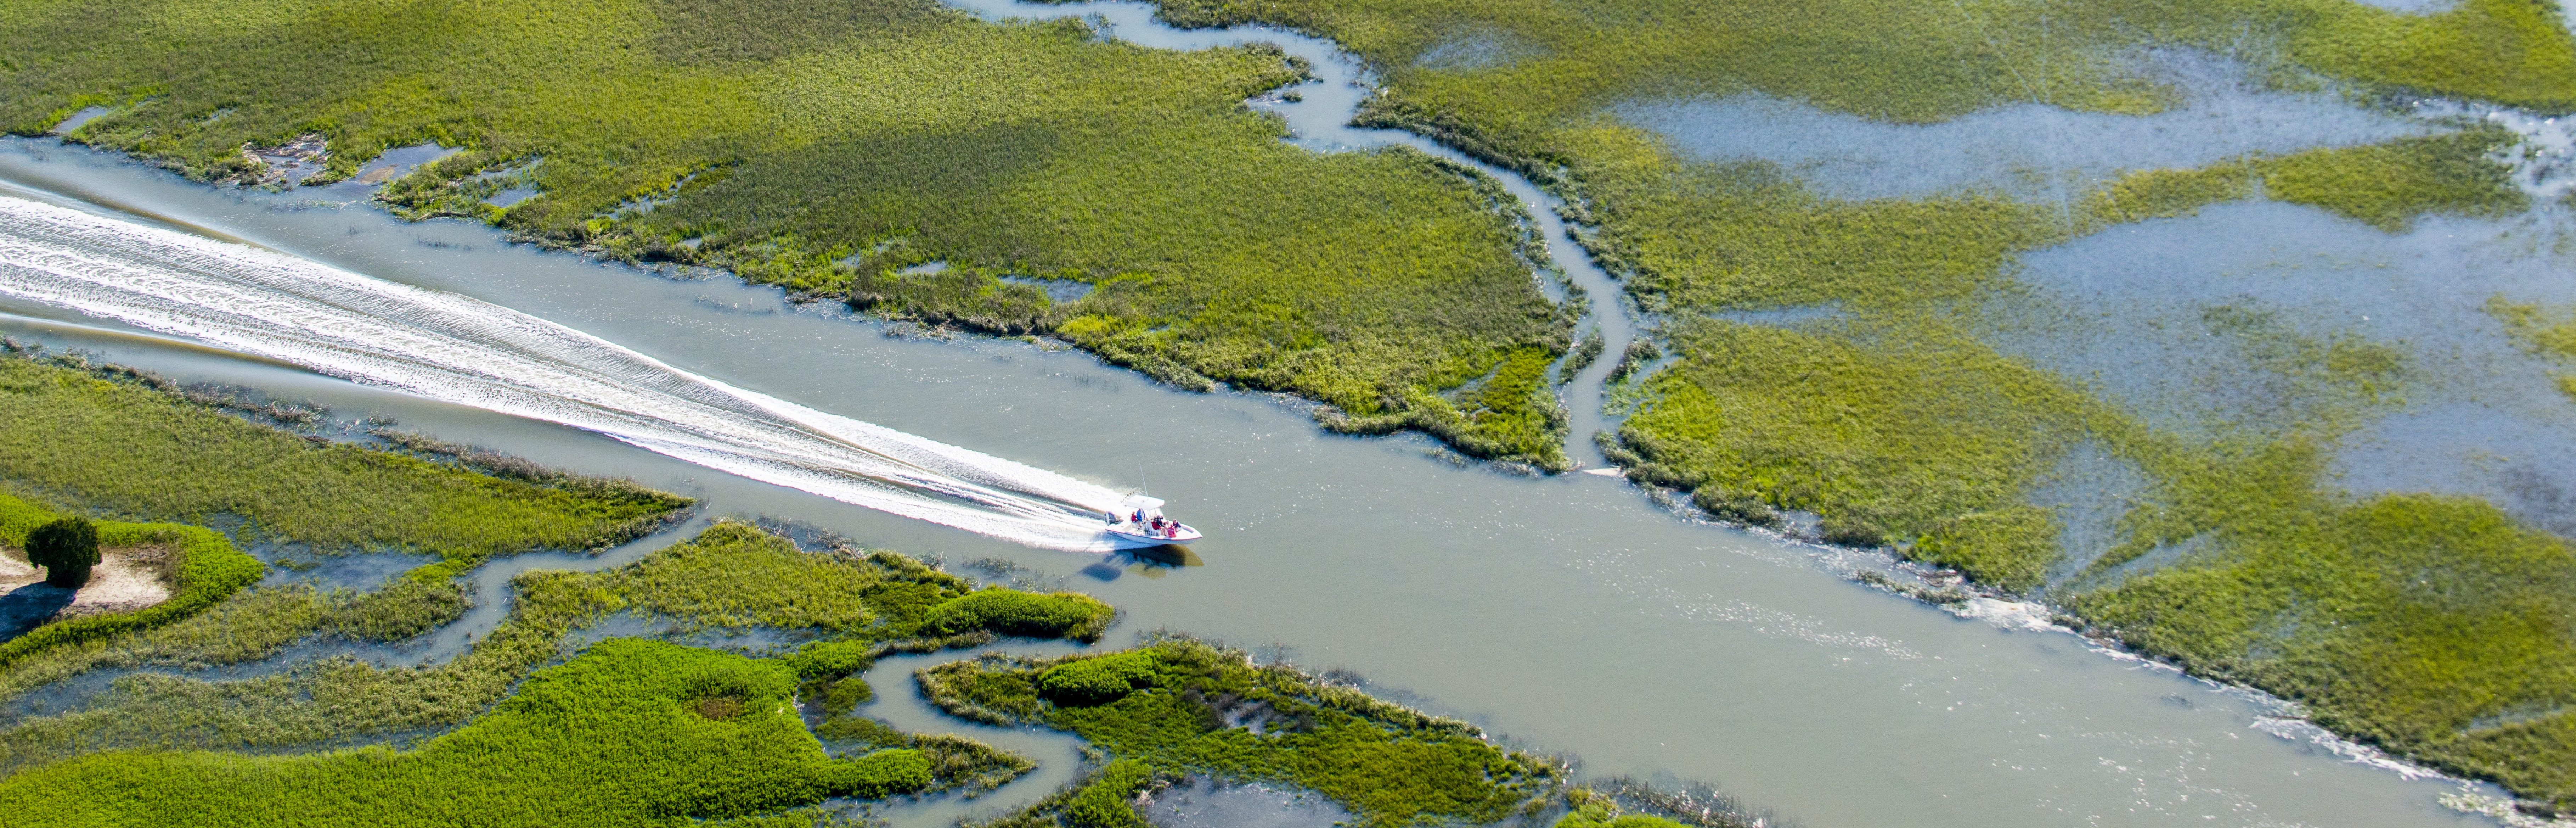 Summer Boating on Kiawah Island